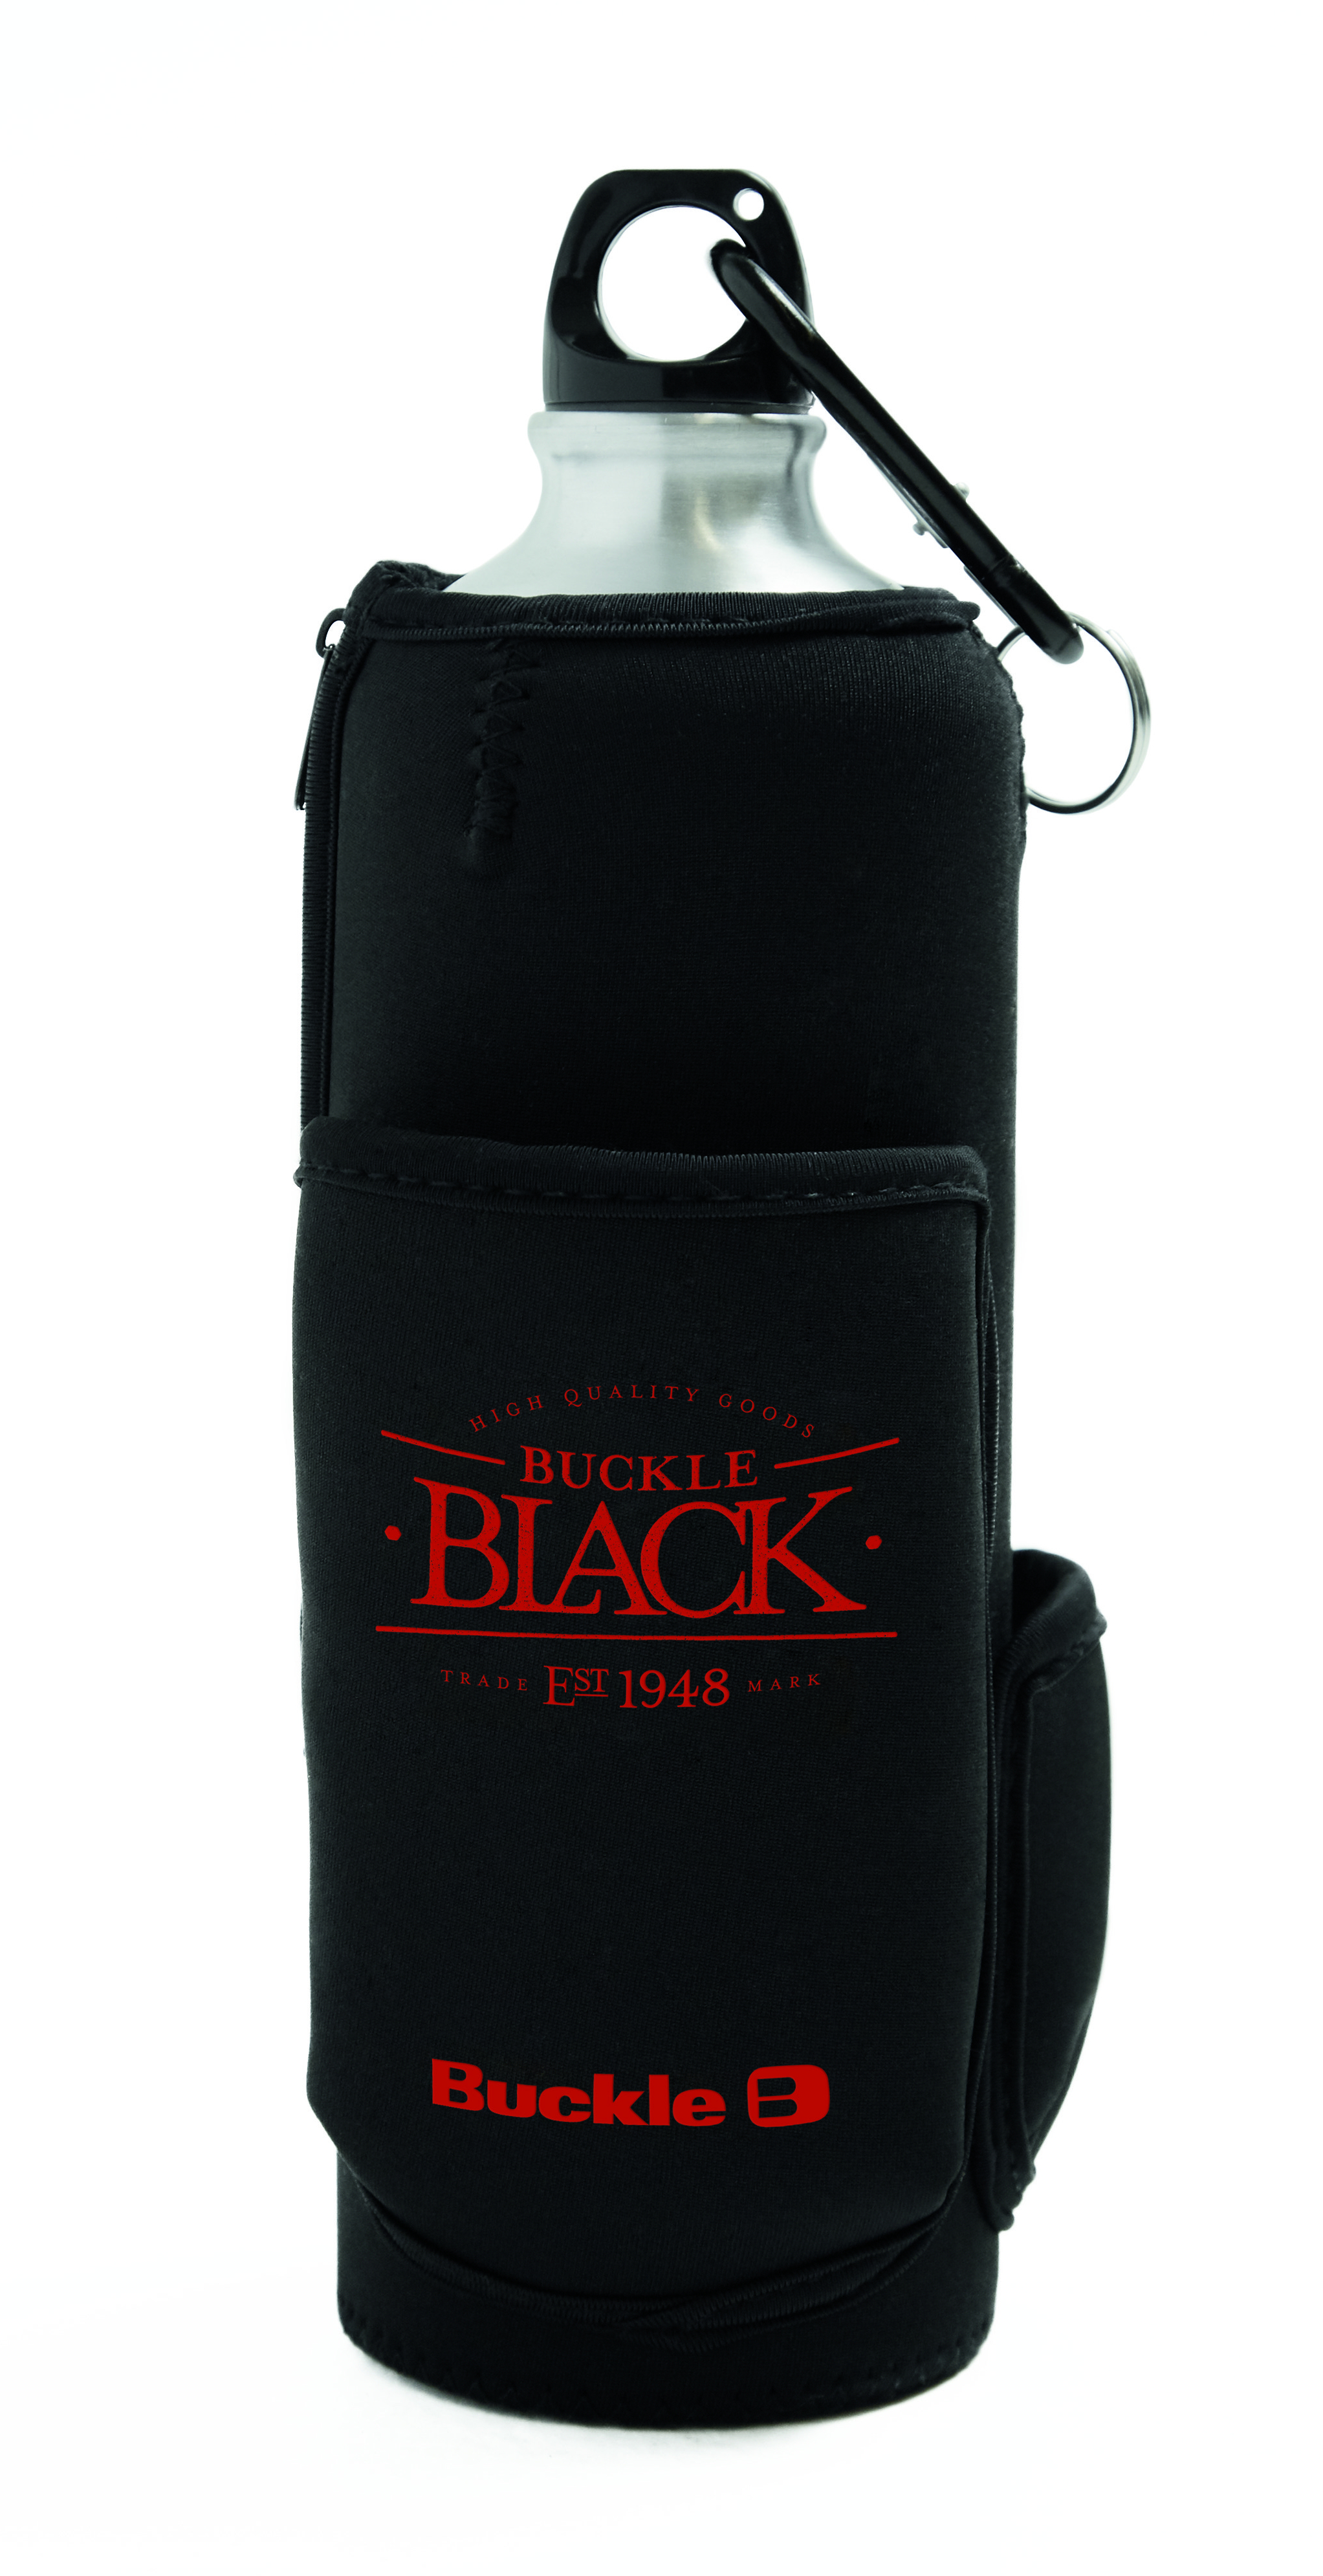 Buckle Brand Event - Buckle Black Water Bottle